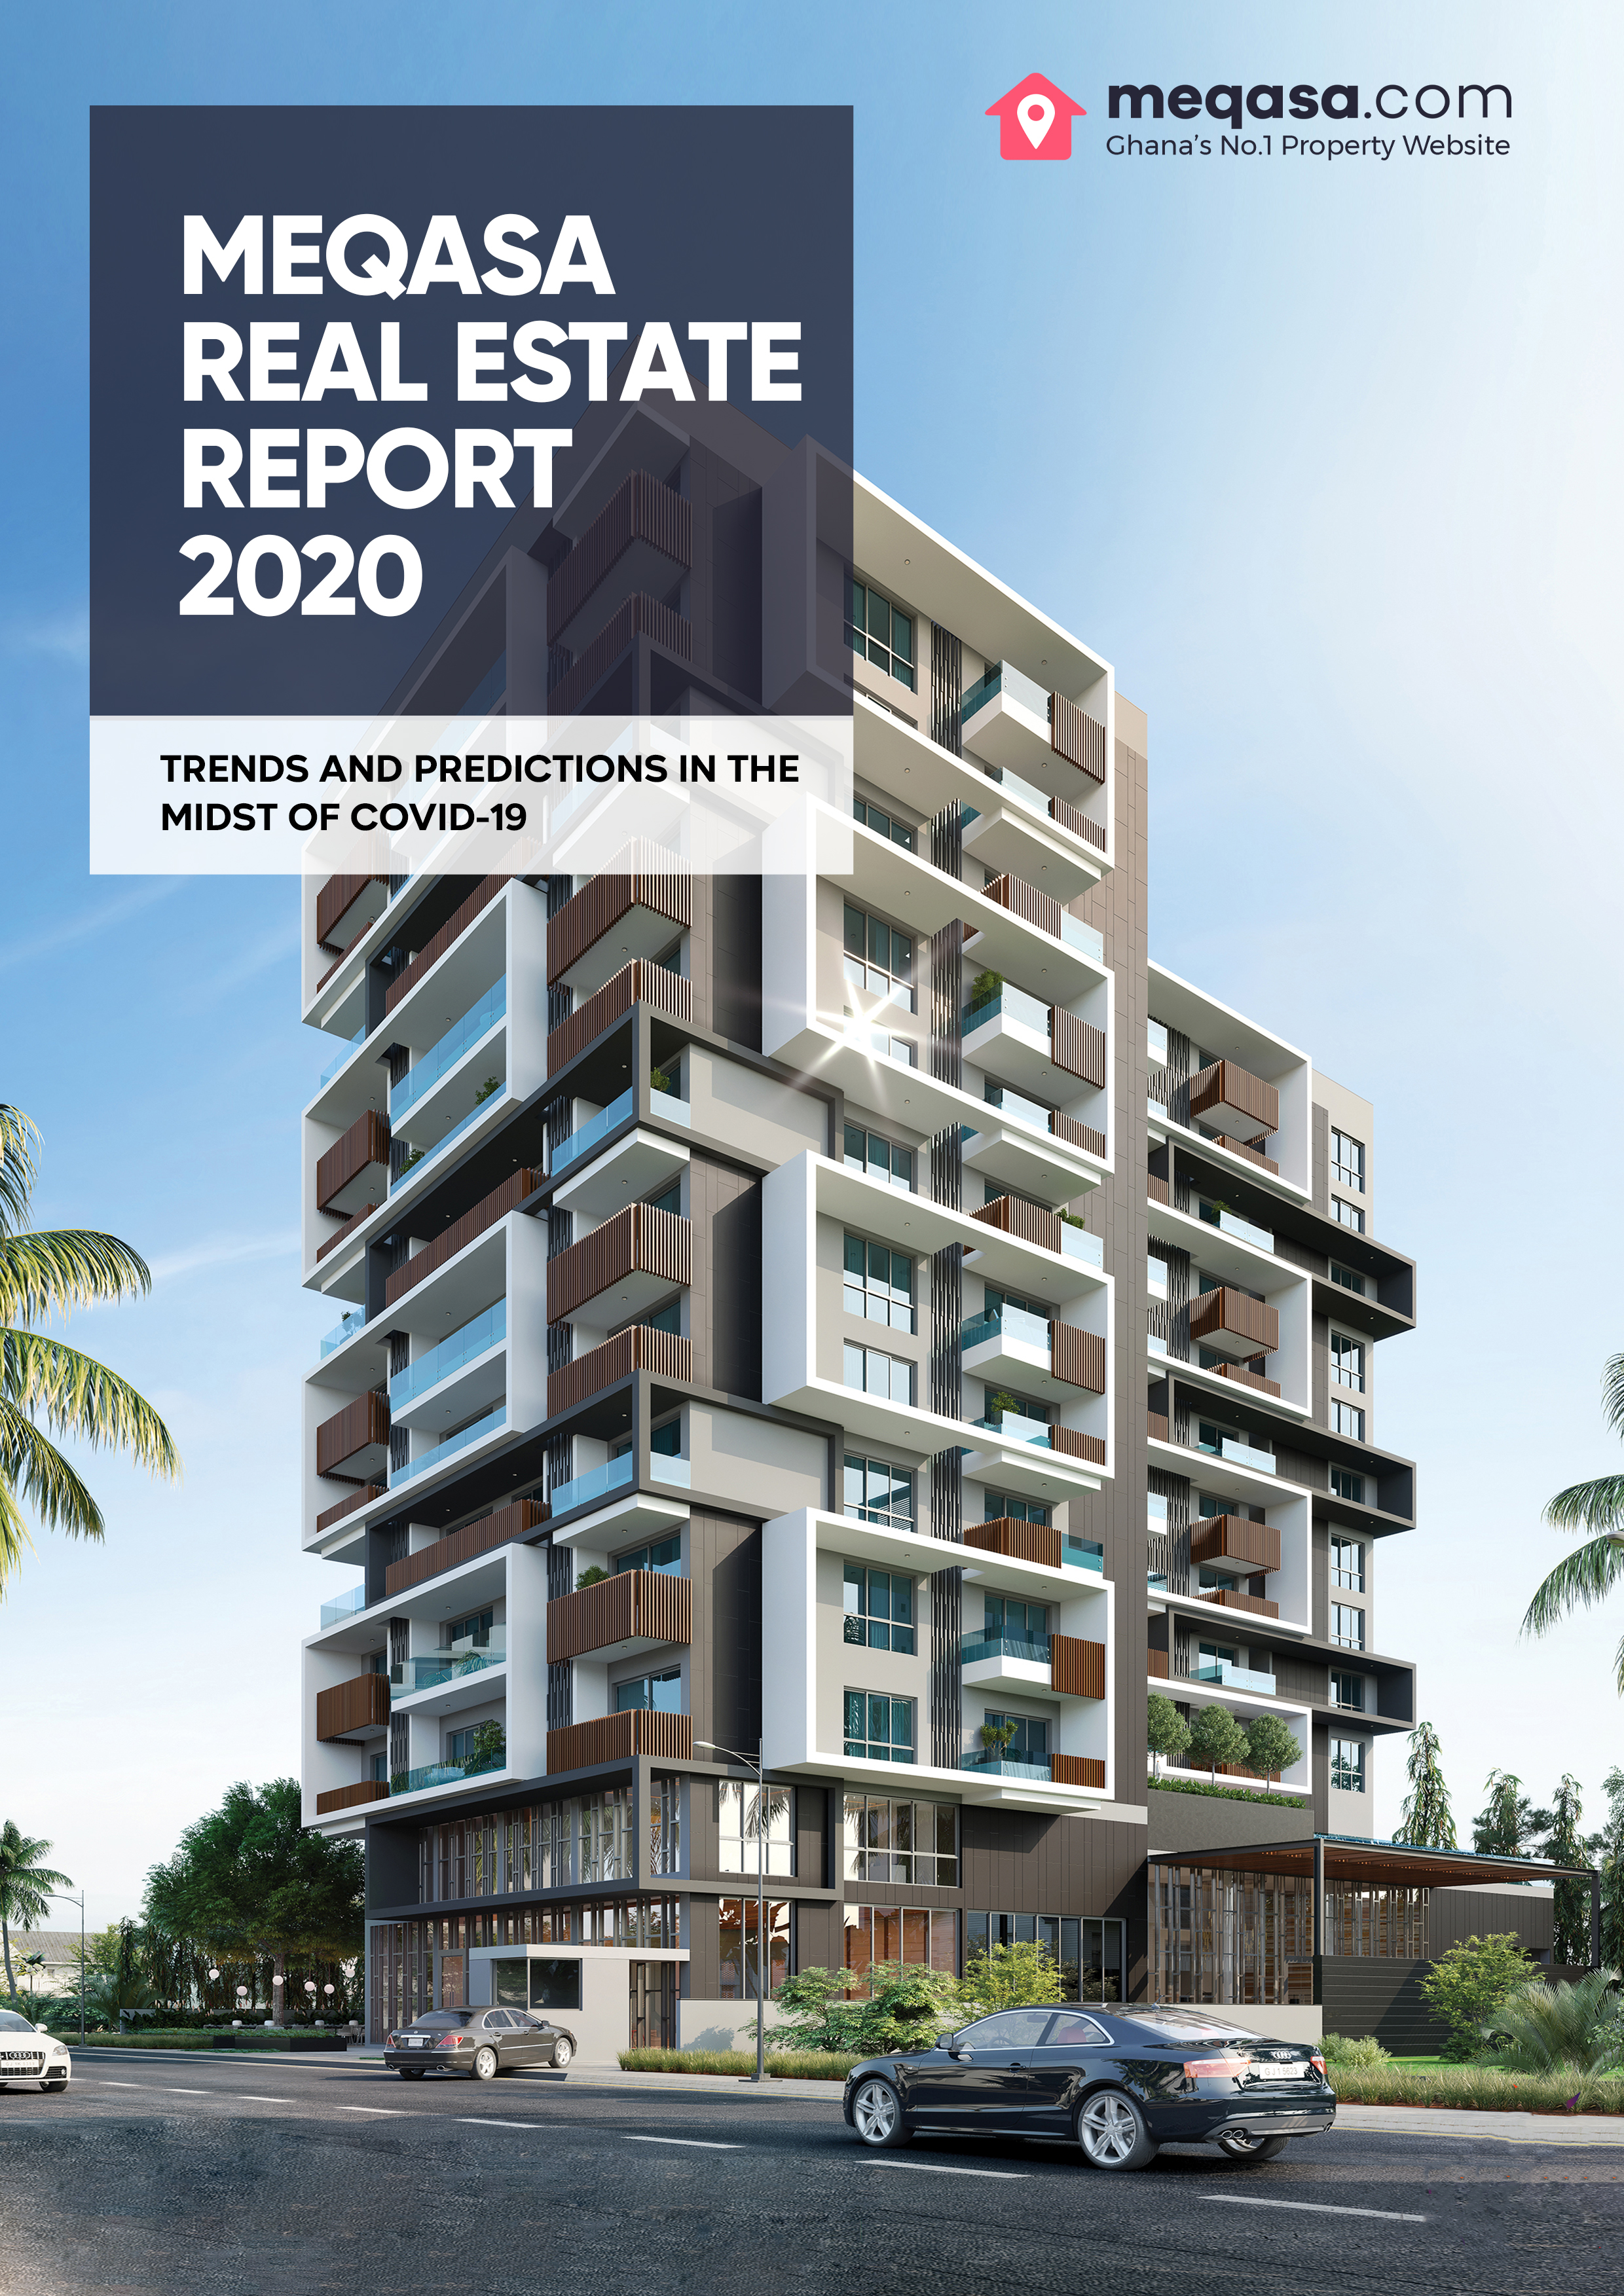 Meqasa Real Estate Report 2020 Art